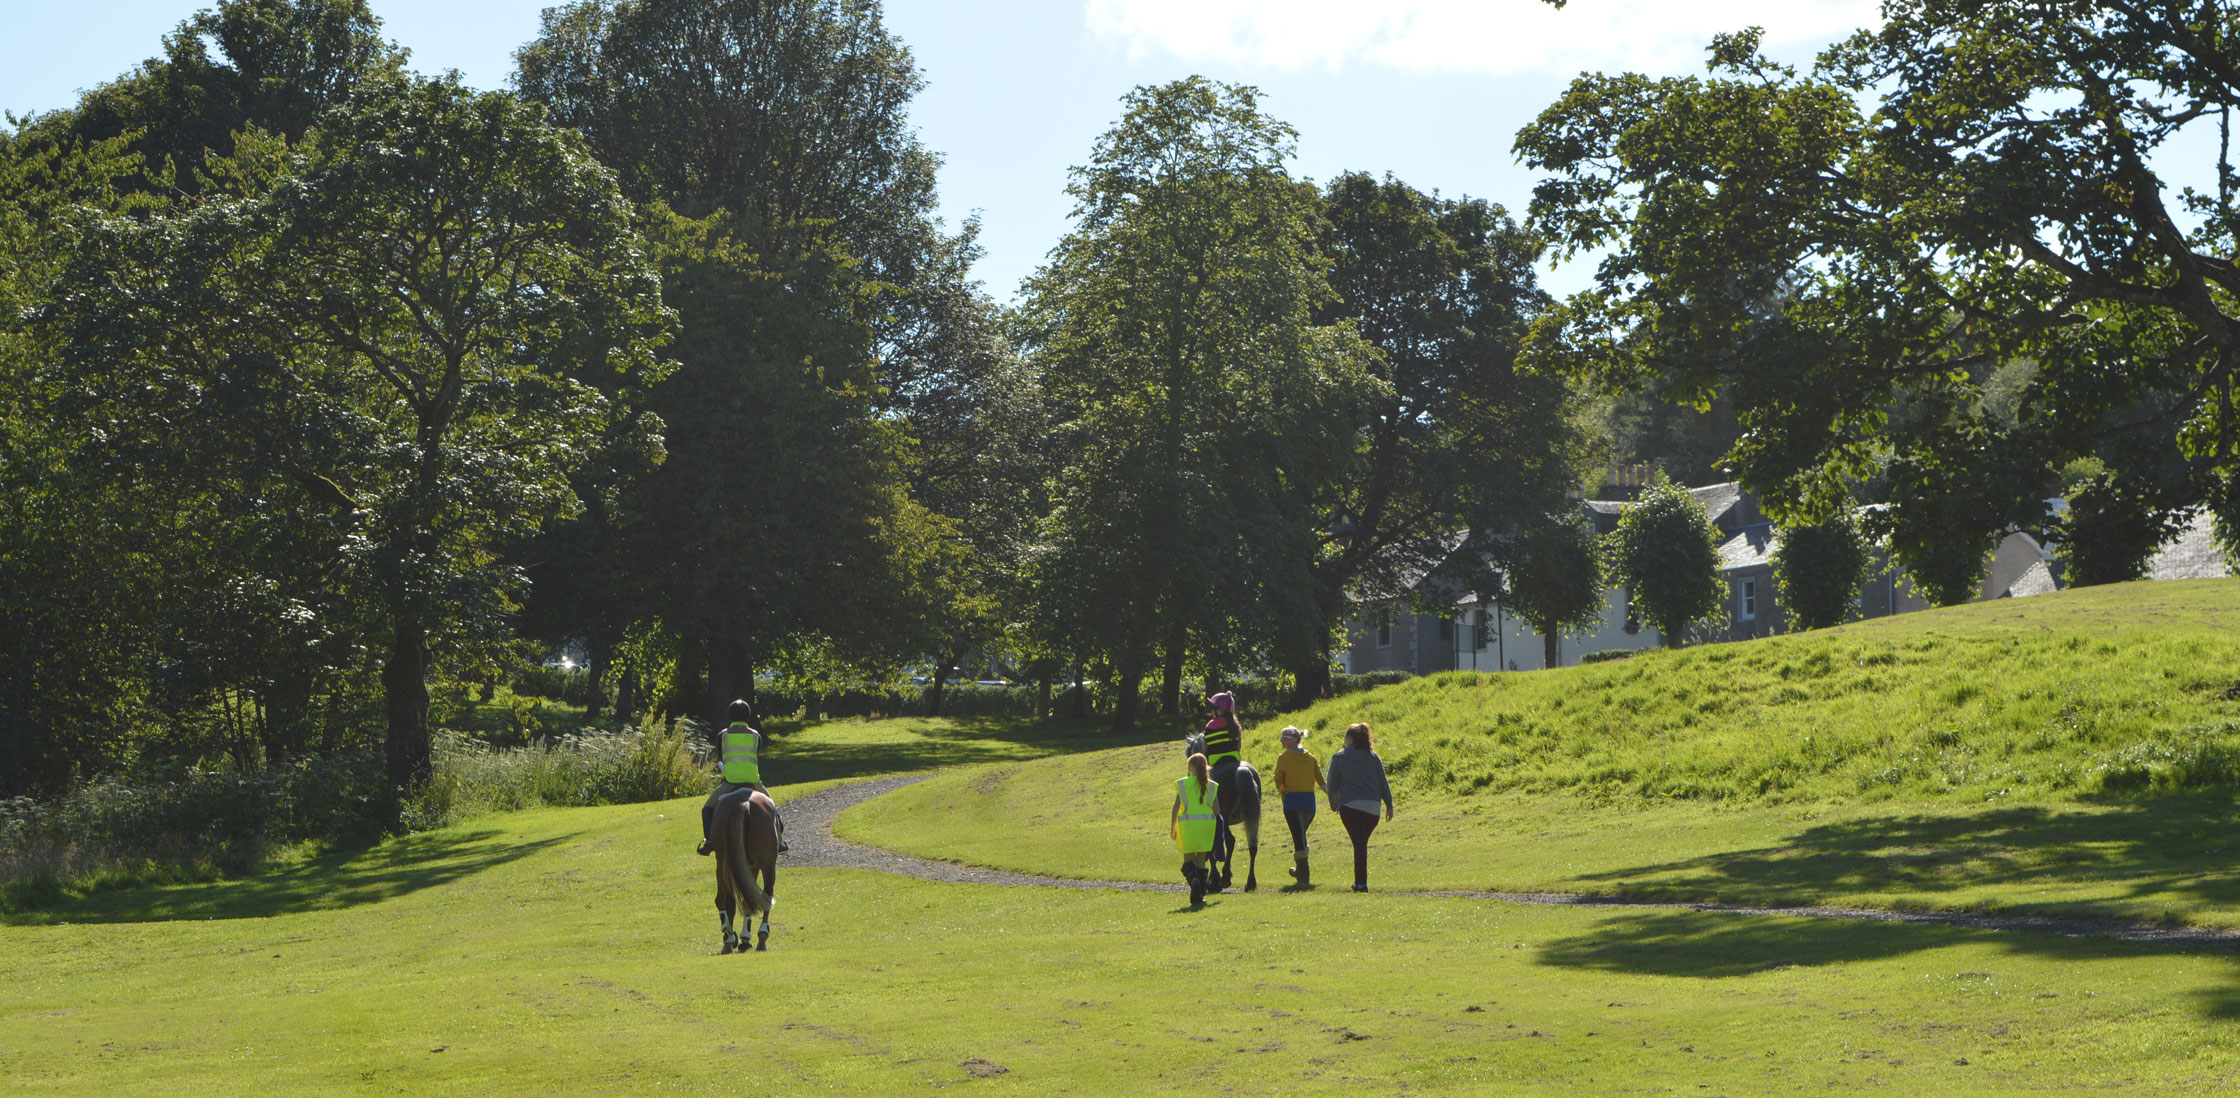 Today, the village Orry is enjoyed by visitors with both two and four legs